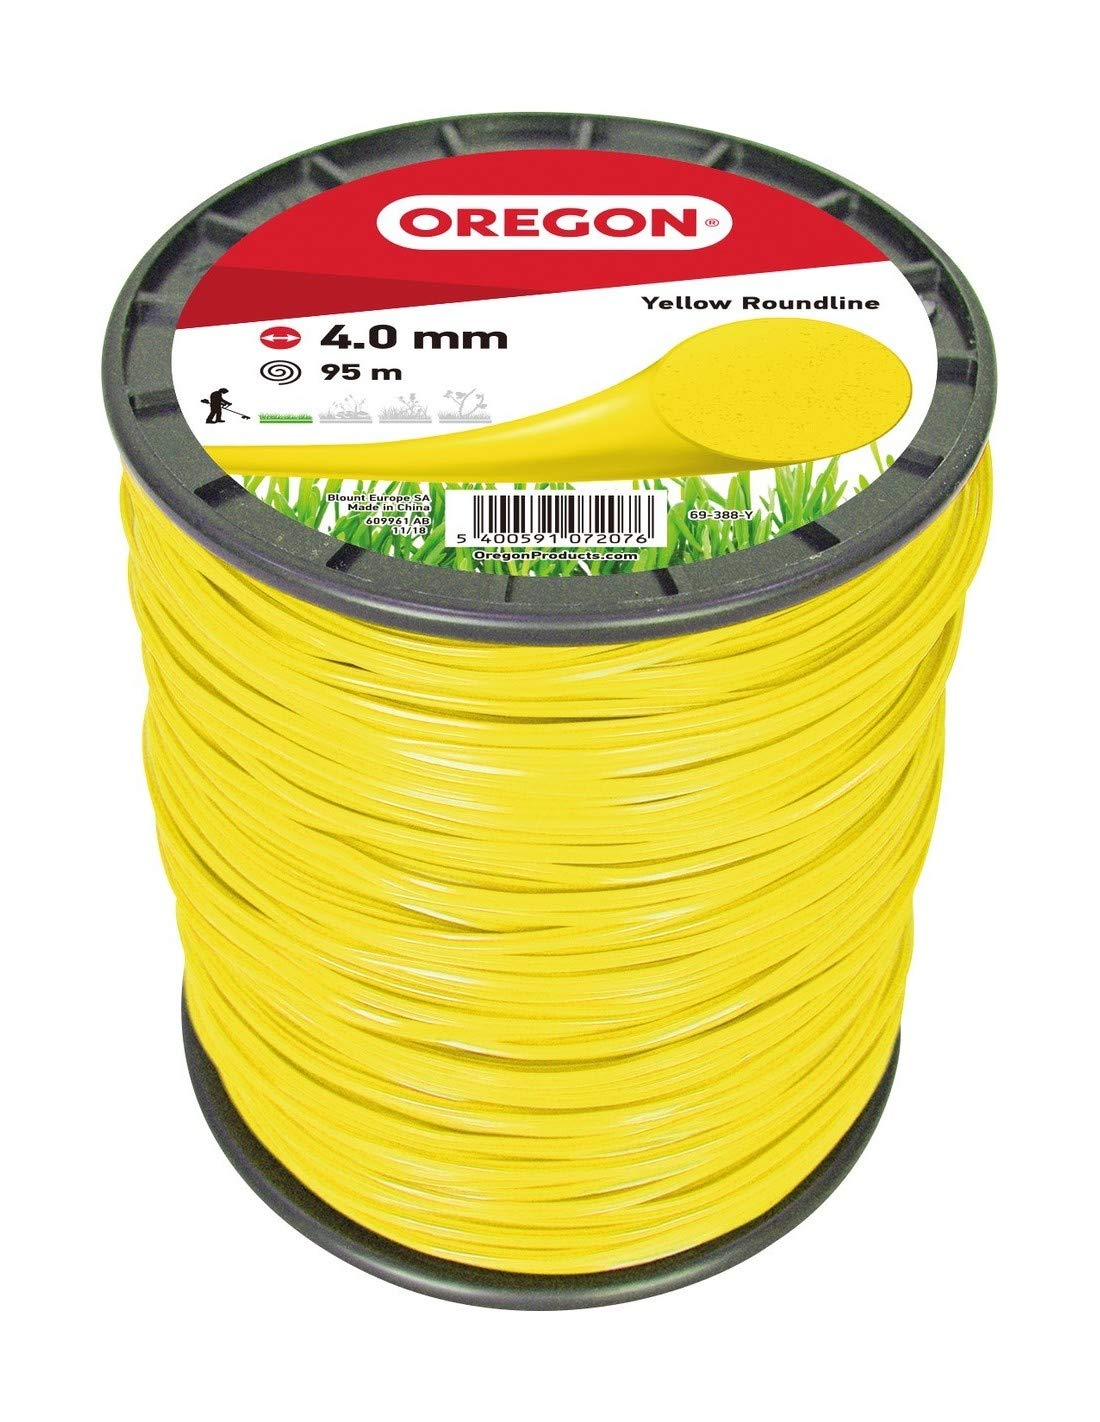 4.0 mm x 95 m Oregon 69-388-Y Yellow Round Strimmer Line//Wire for Grass Trimmers and Brushcutters